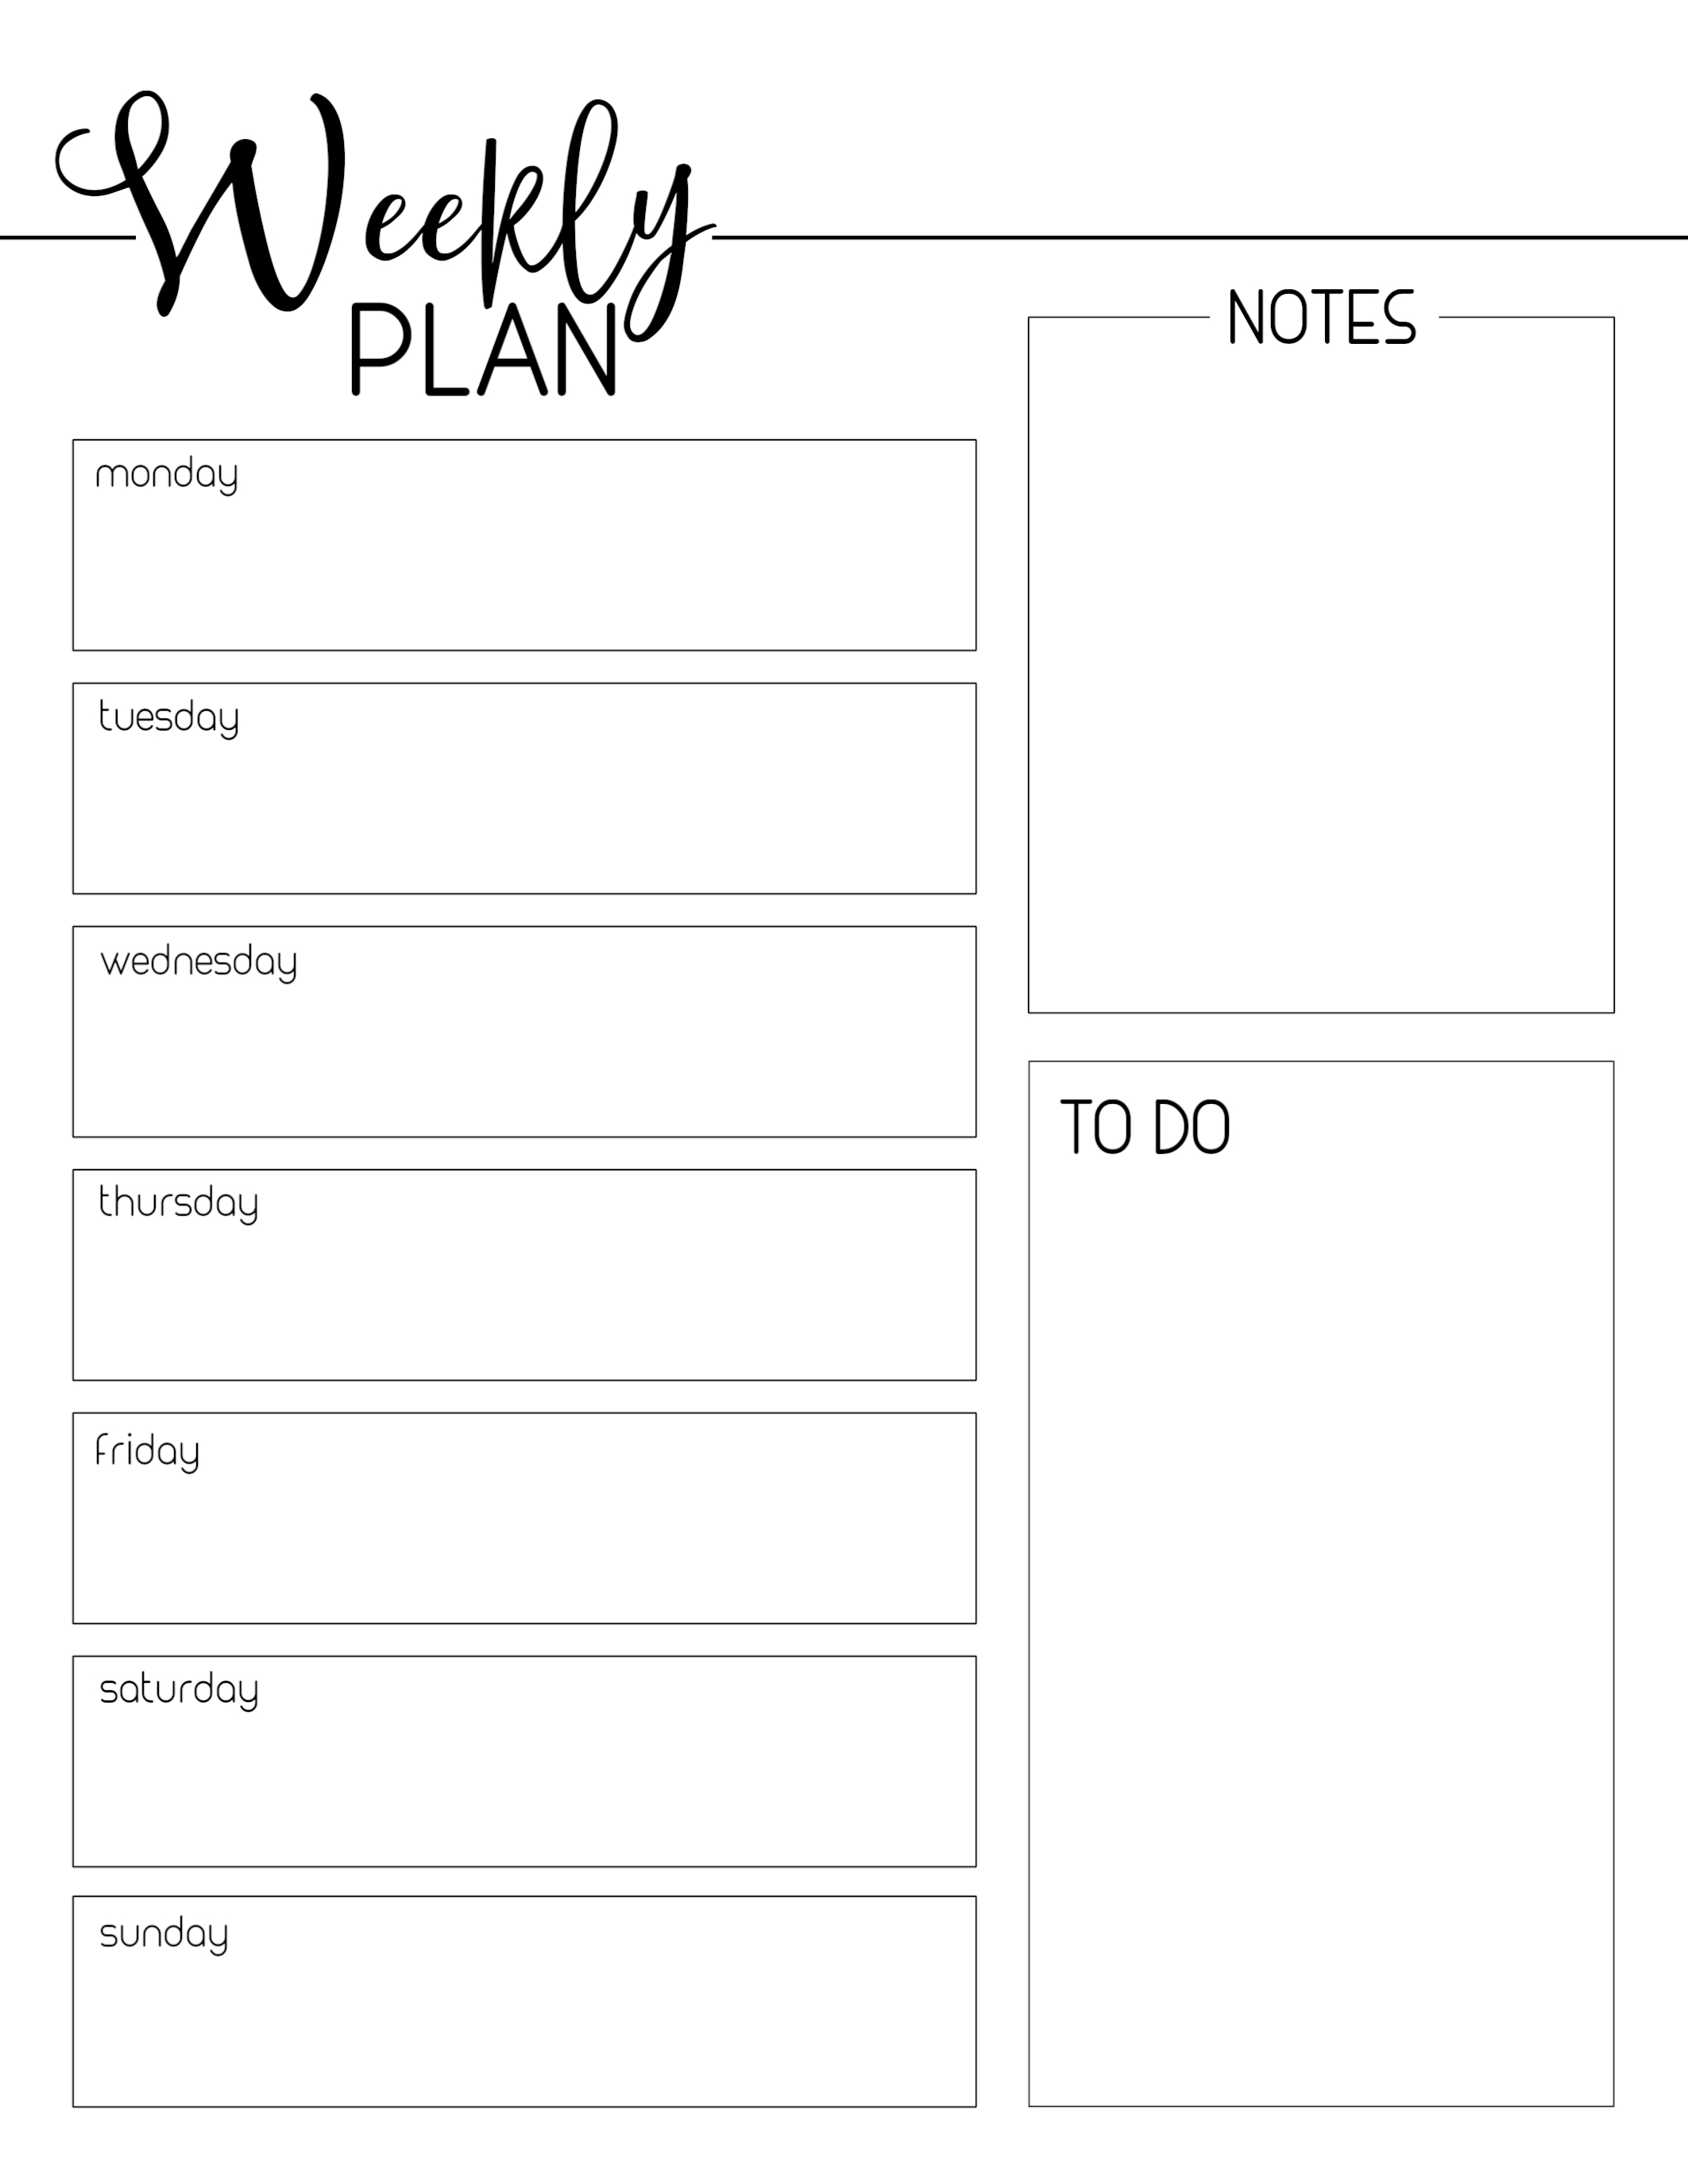 picture relating to Weekly Agenda Printable named Weekly Planner Template Free of charge Printable - Paper Path Design and style